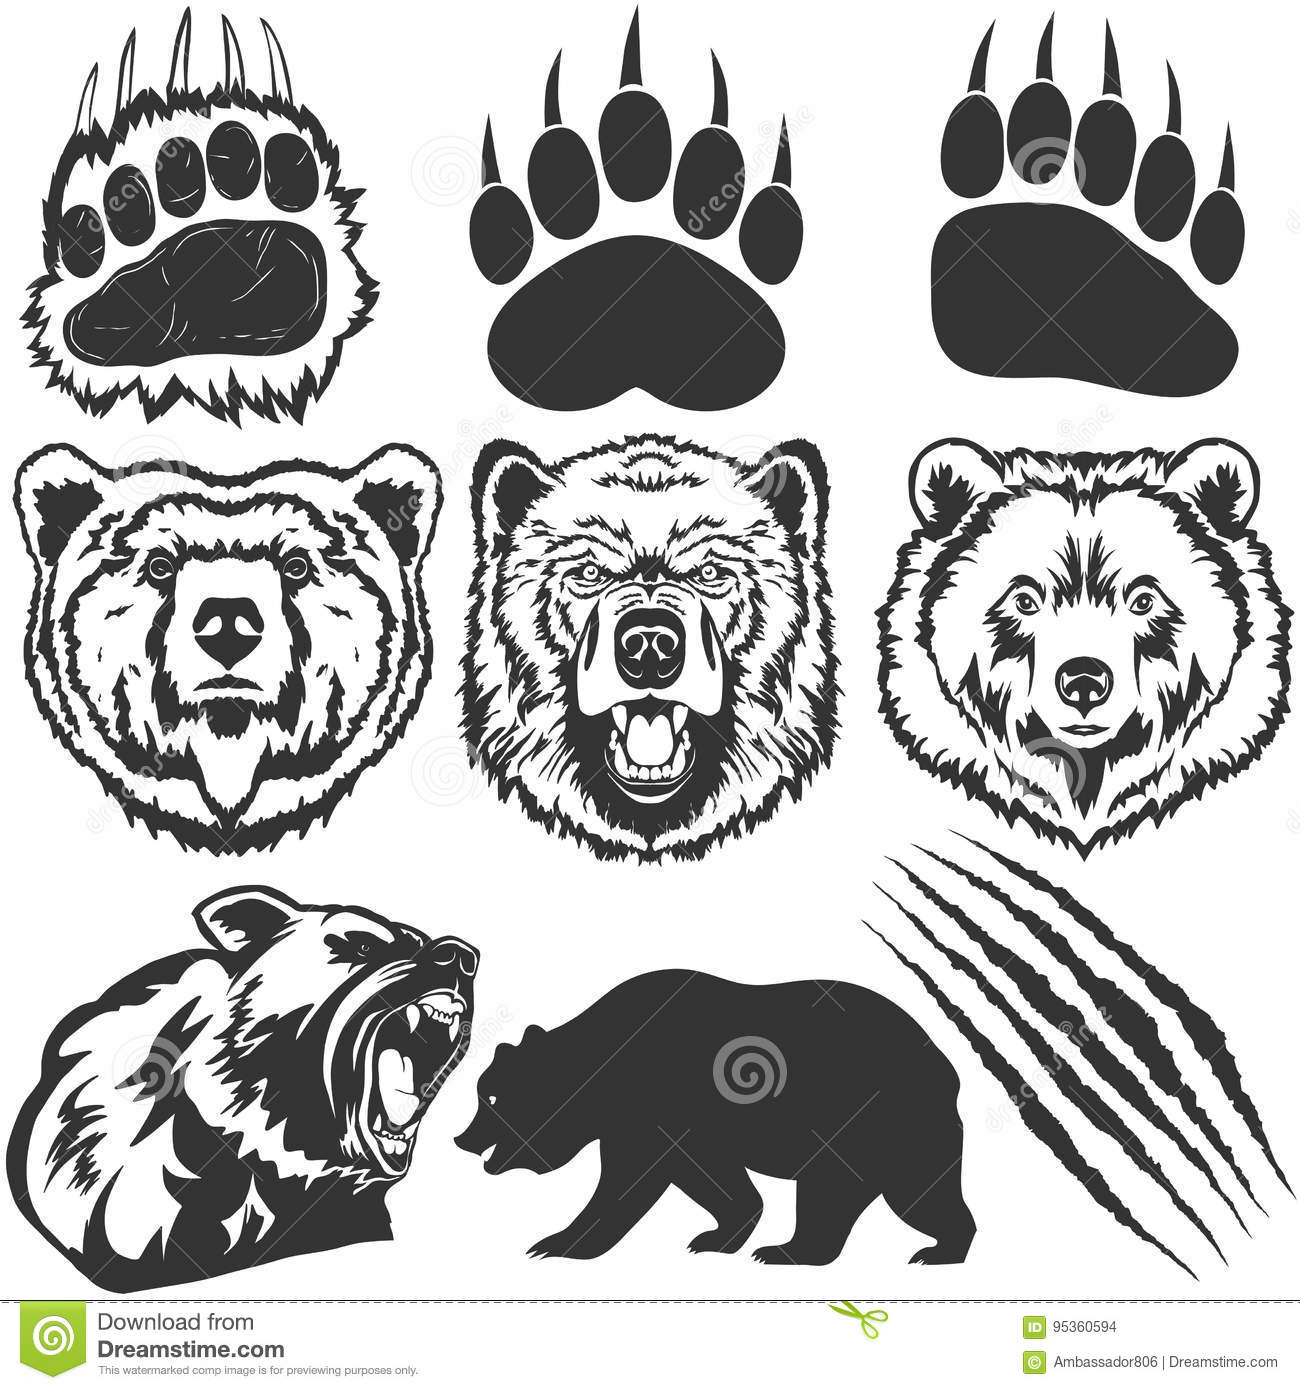 Claw cartoons illustrations vector stock images 14509 for Bear footprints template